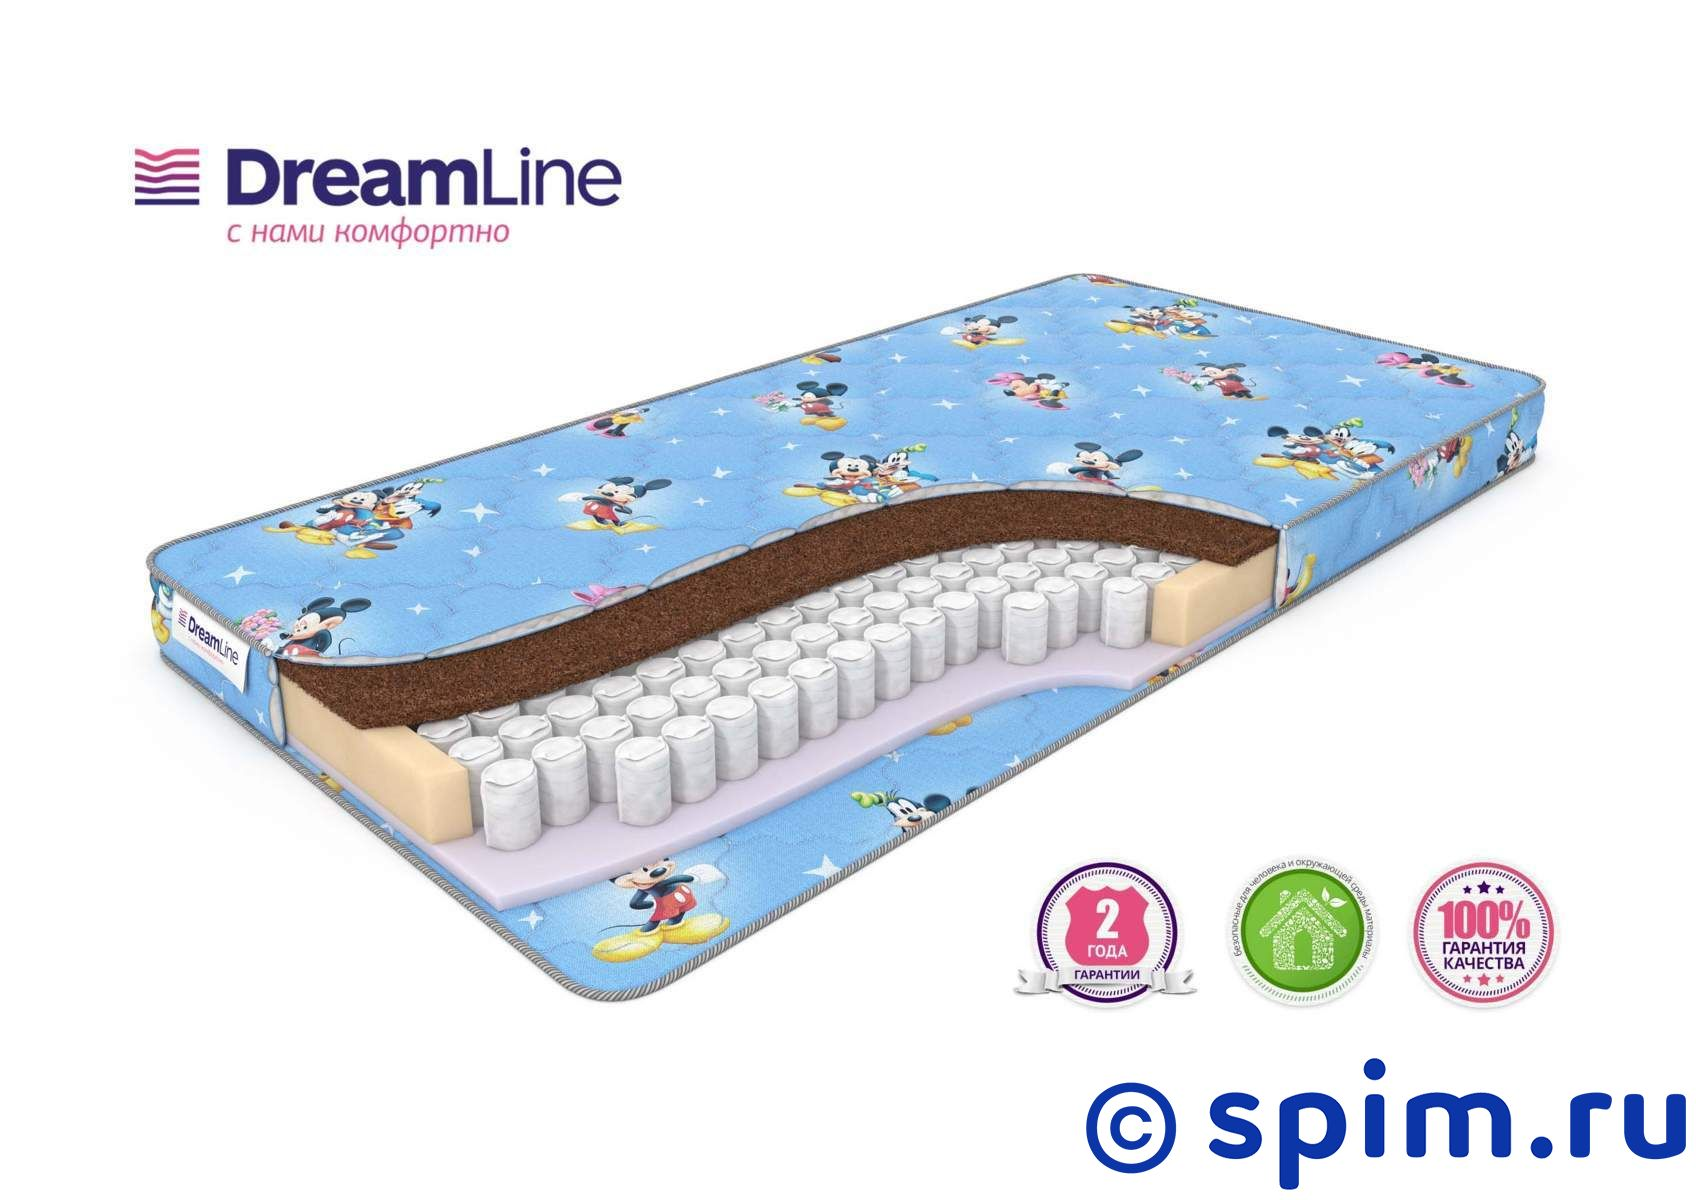 Детский матрас DreamLine Baby Sleep Dream Tfk 60х120 см